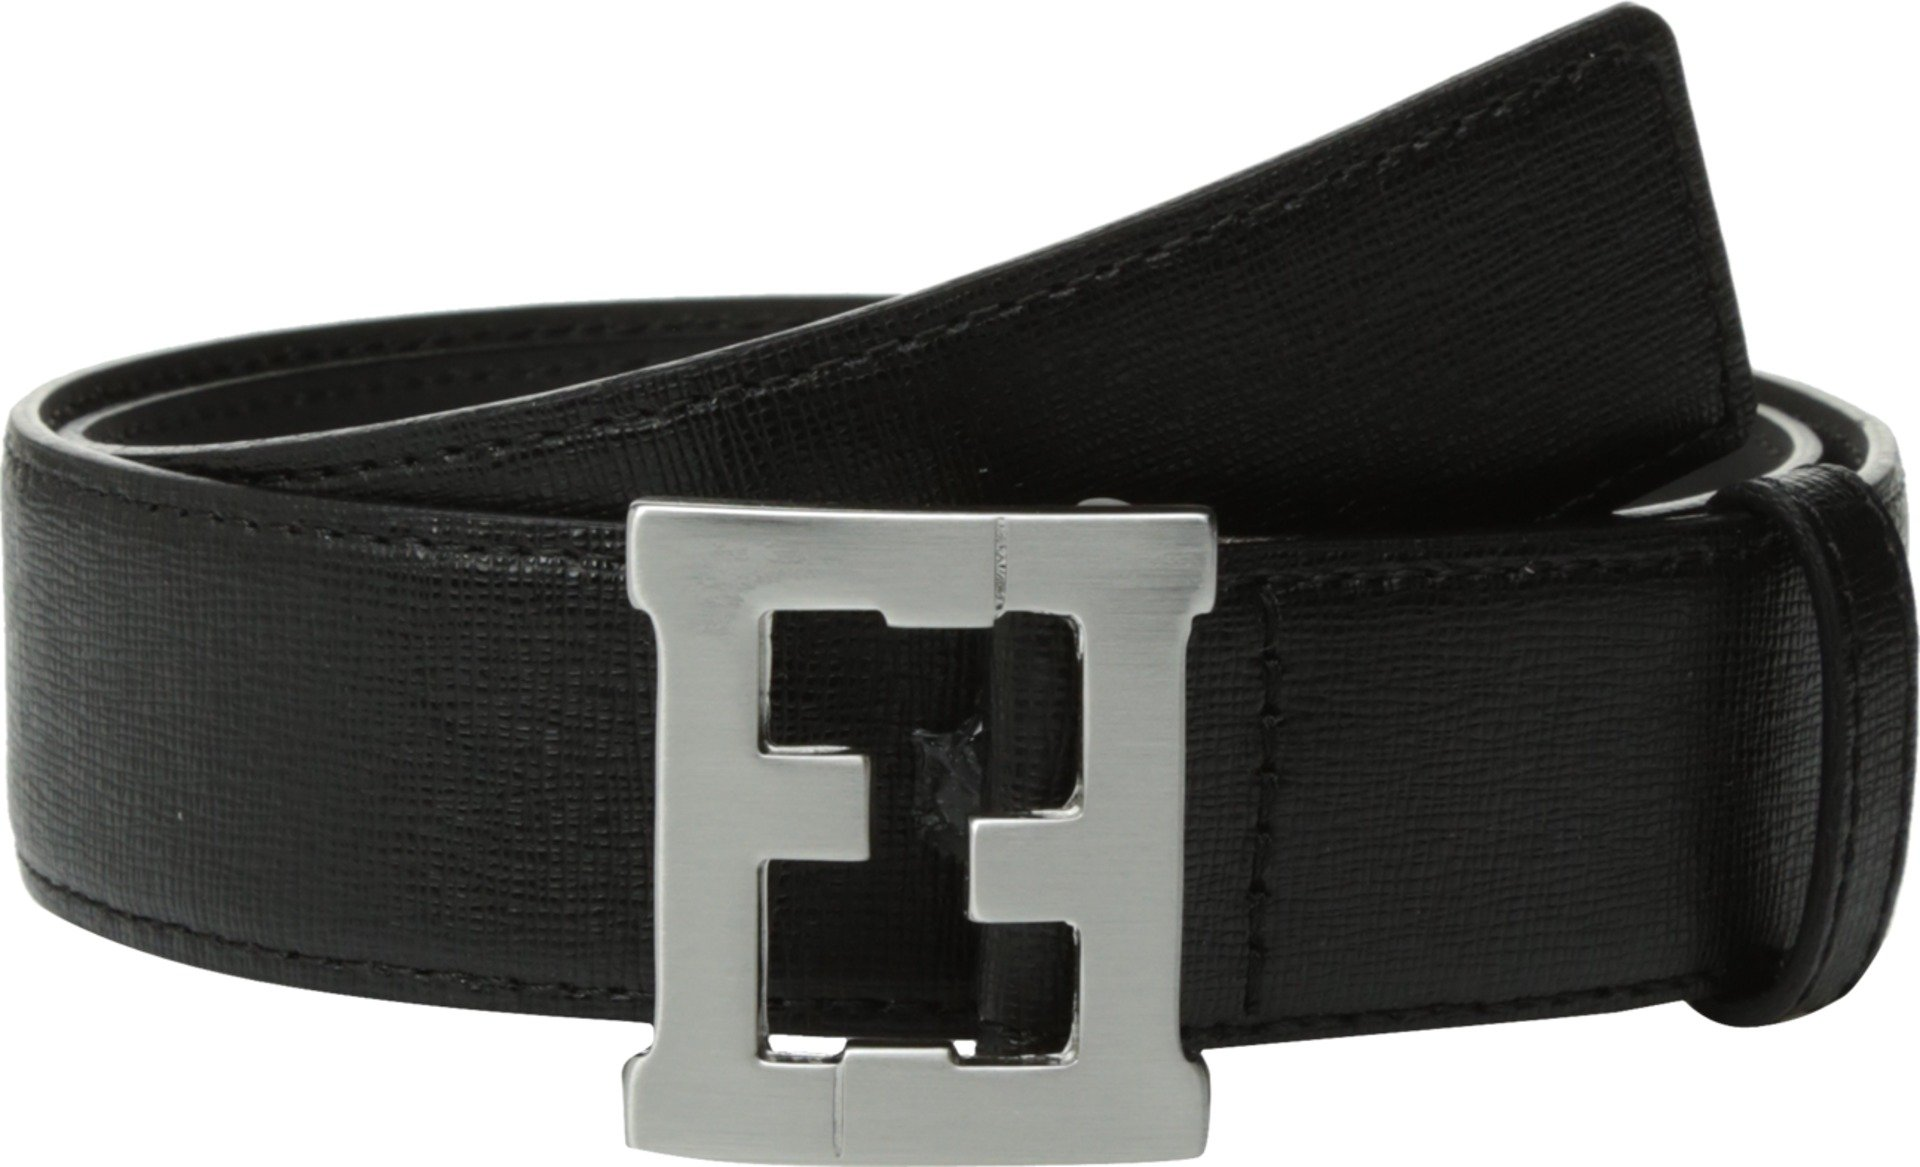 Fendi Kids Baby Boy's Logo Buckle Leather Belt (Toddler/Little Kids/Big Kids) Black Belt